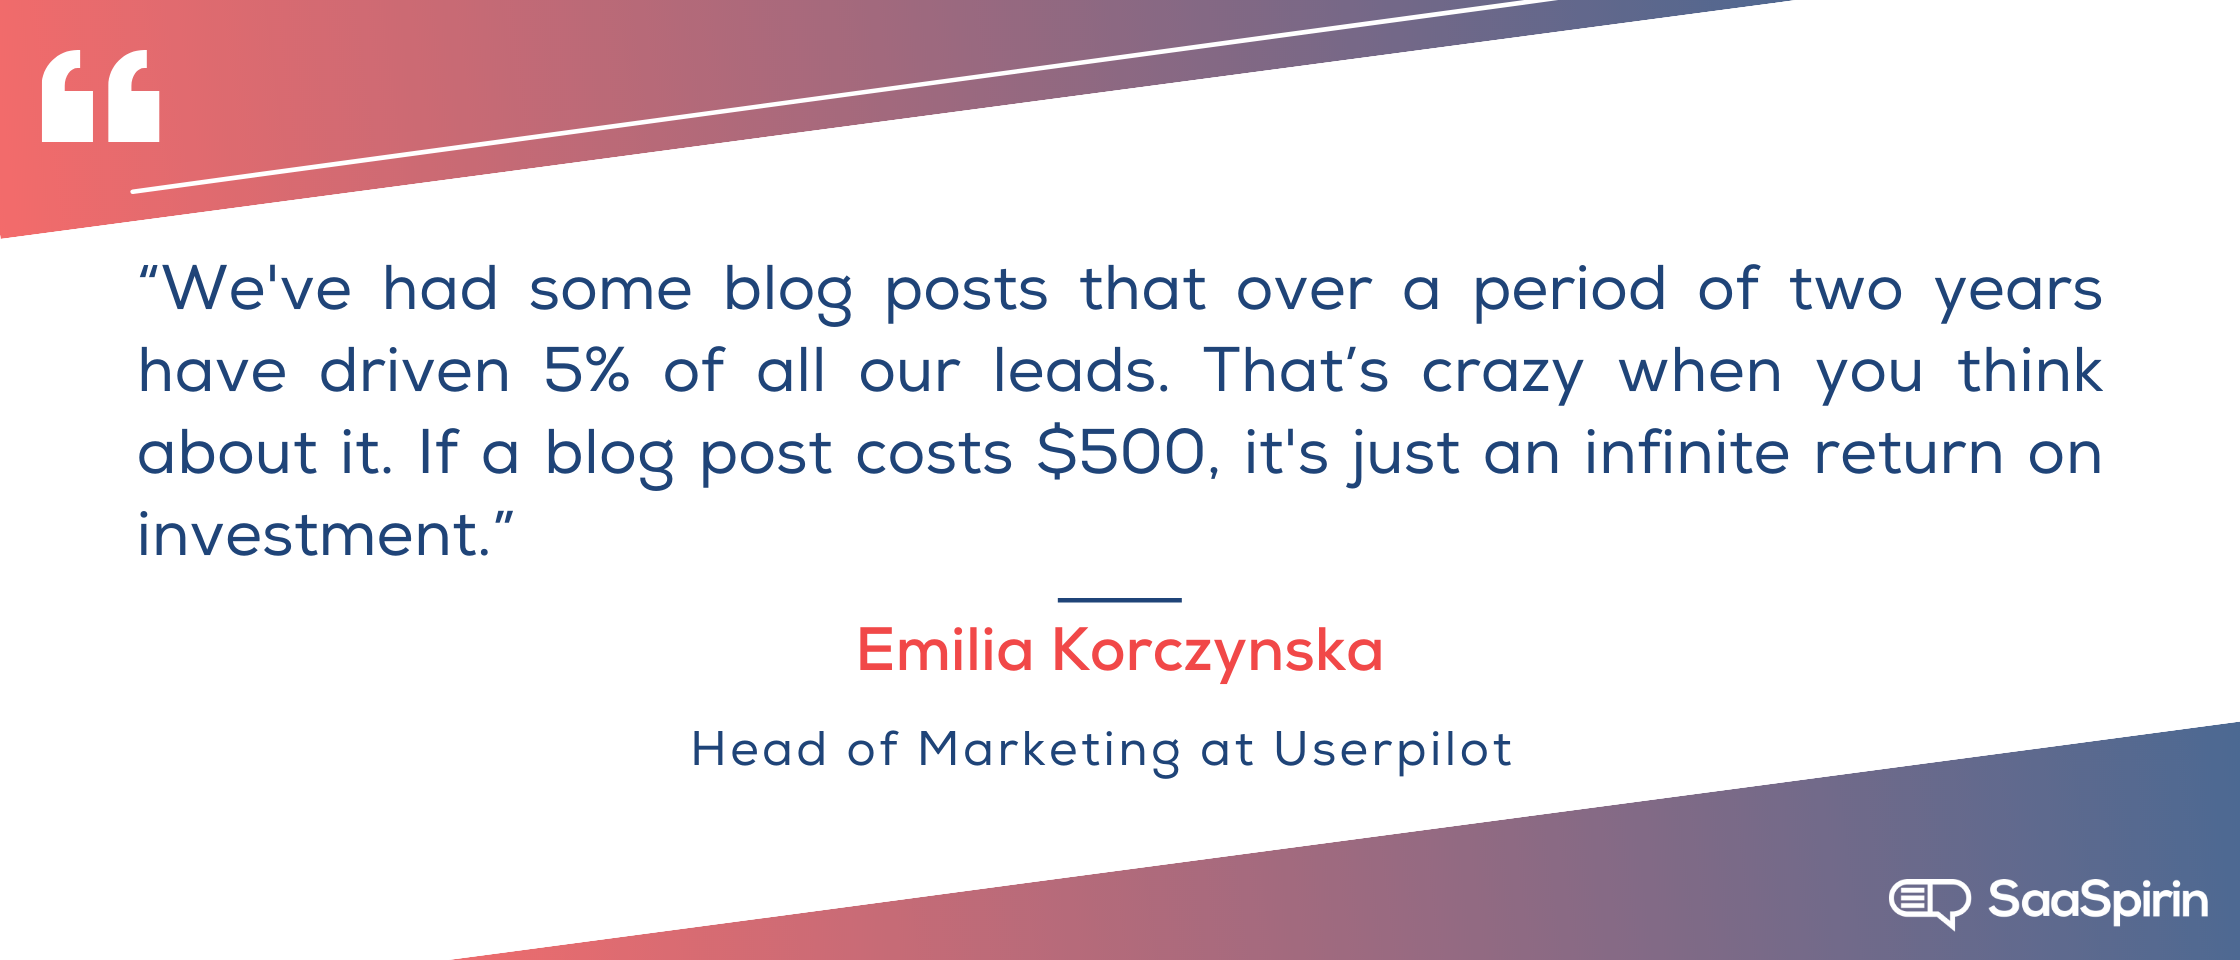 Weve-had-some-blog-posts-that-over-a-period-of-two-years-have-driven-5%-of-all-our-leads-Thats-crazy-when-you-think-about-it-If-a-blog-post-costs-$500-its-just-an -infinite-return-on-investment.png